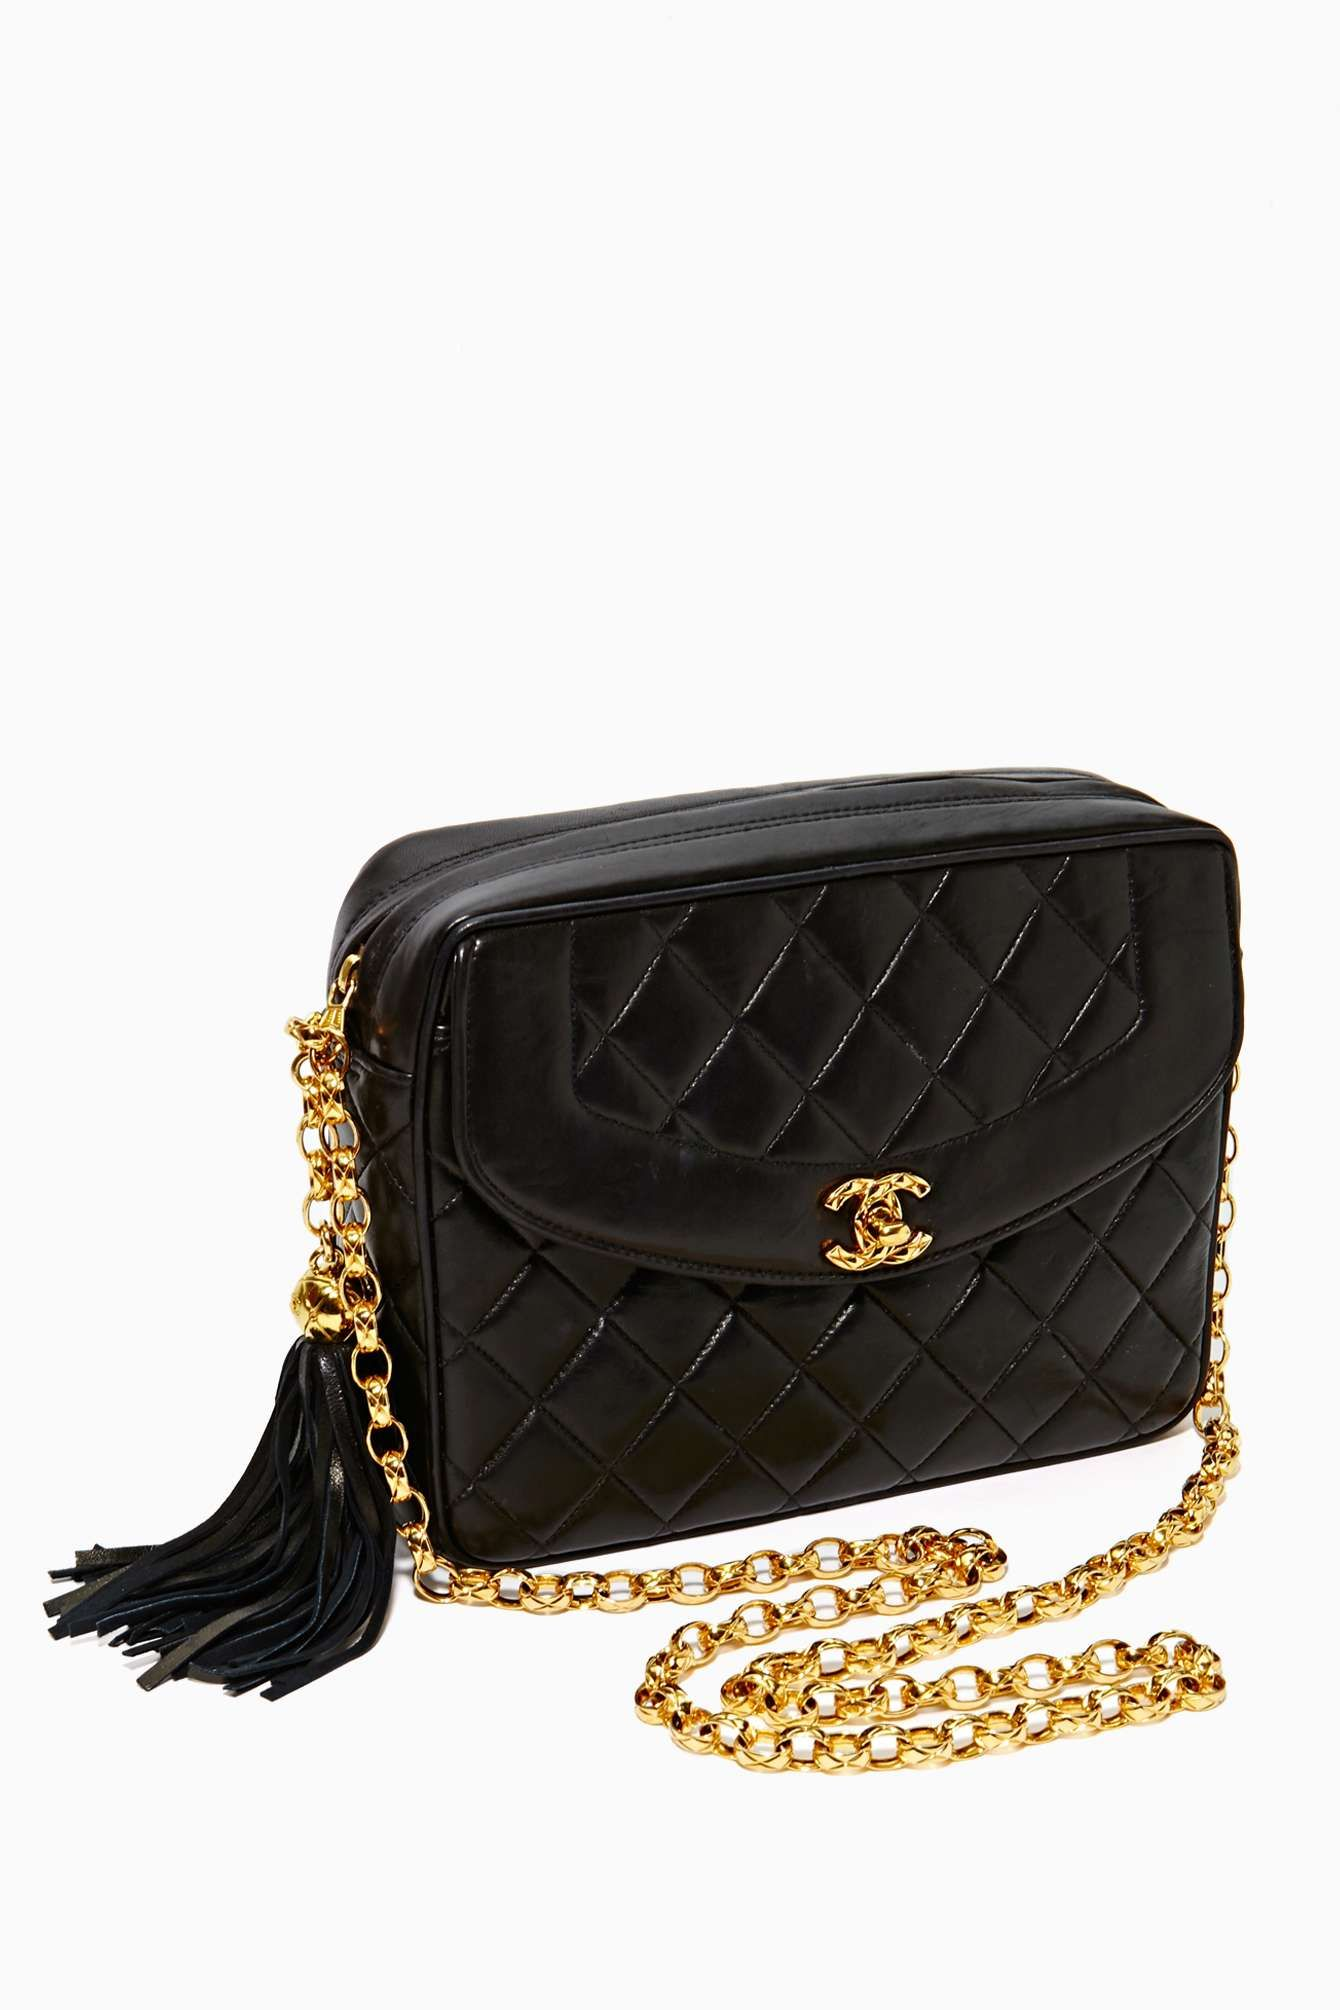 35326592c564cd All Chanel accessories especially handbags inspire me because extras on the  bag brings the solid black bag out. I want to incorporate this in my  handbags.